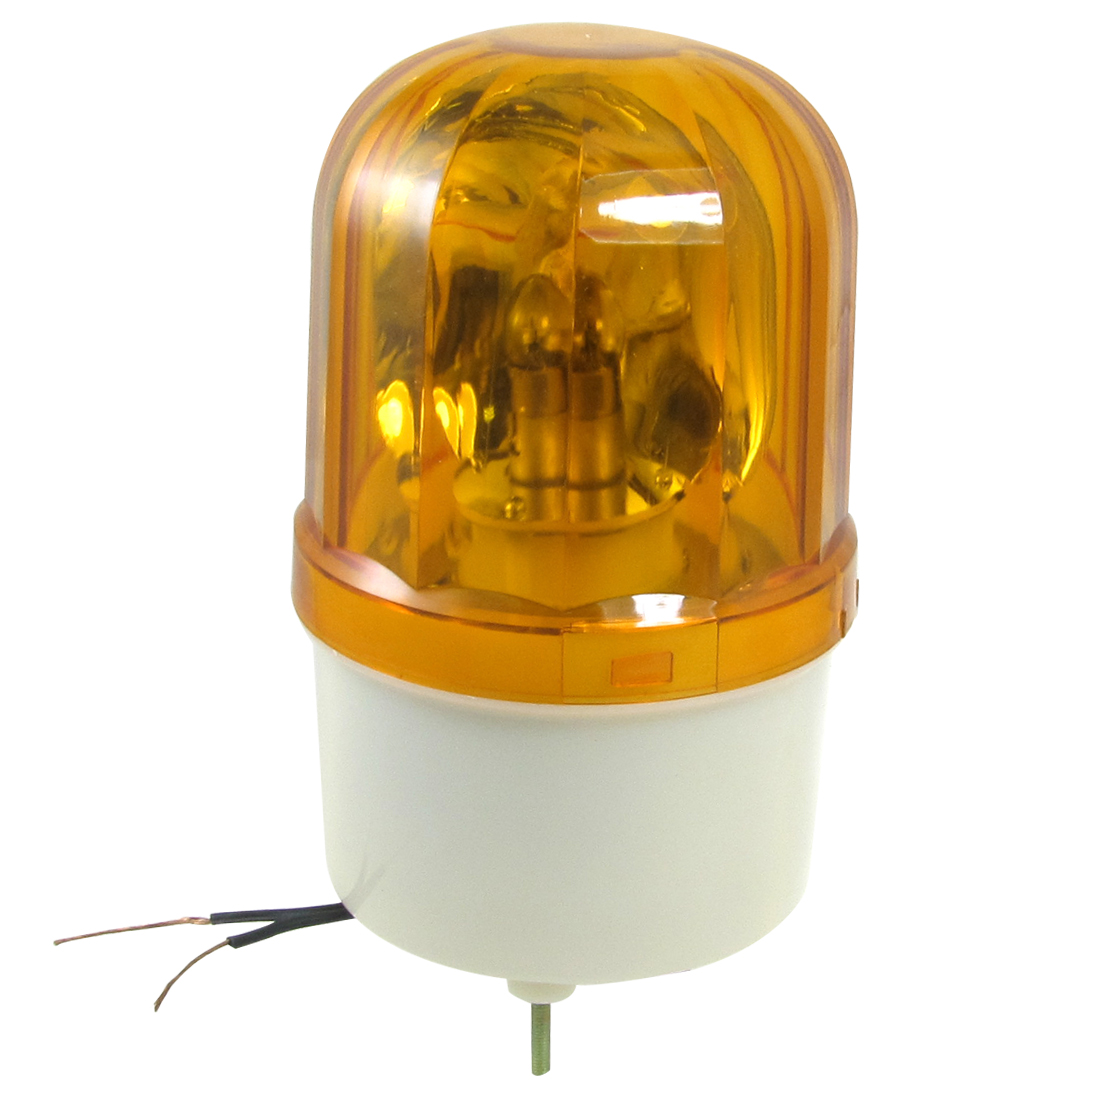 AC 220V 10W Yellow Rotating Light Industrial Signal Warning Lamp